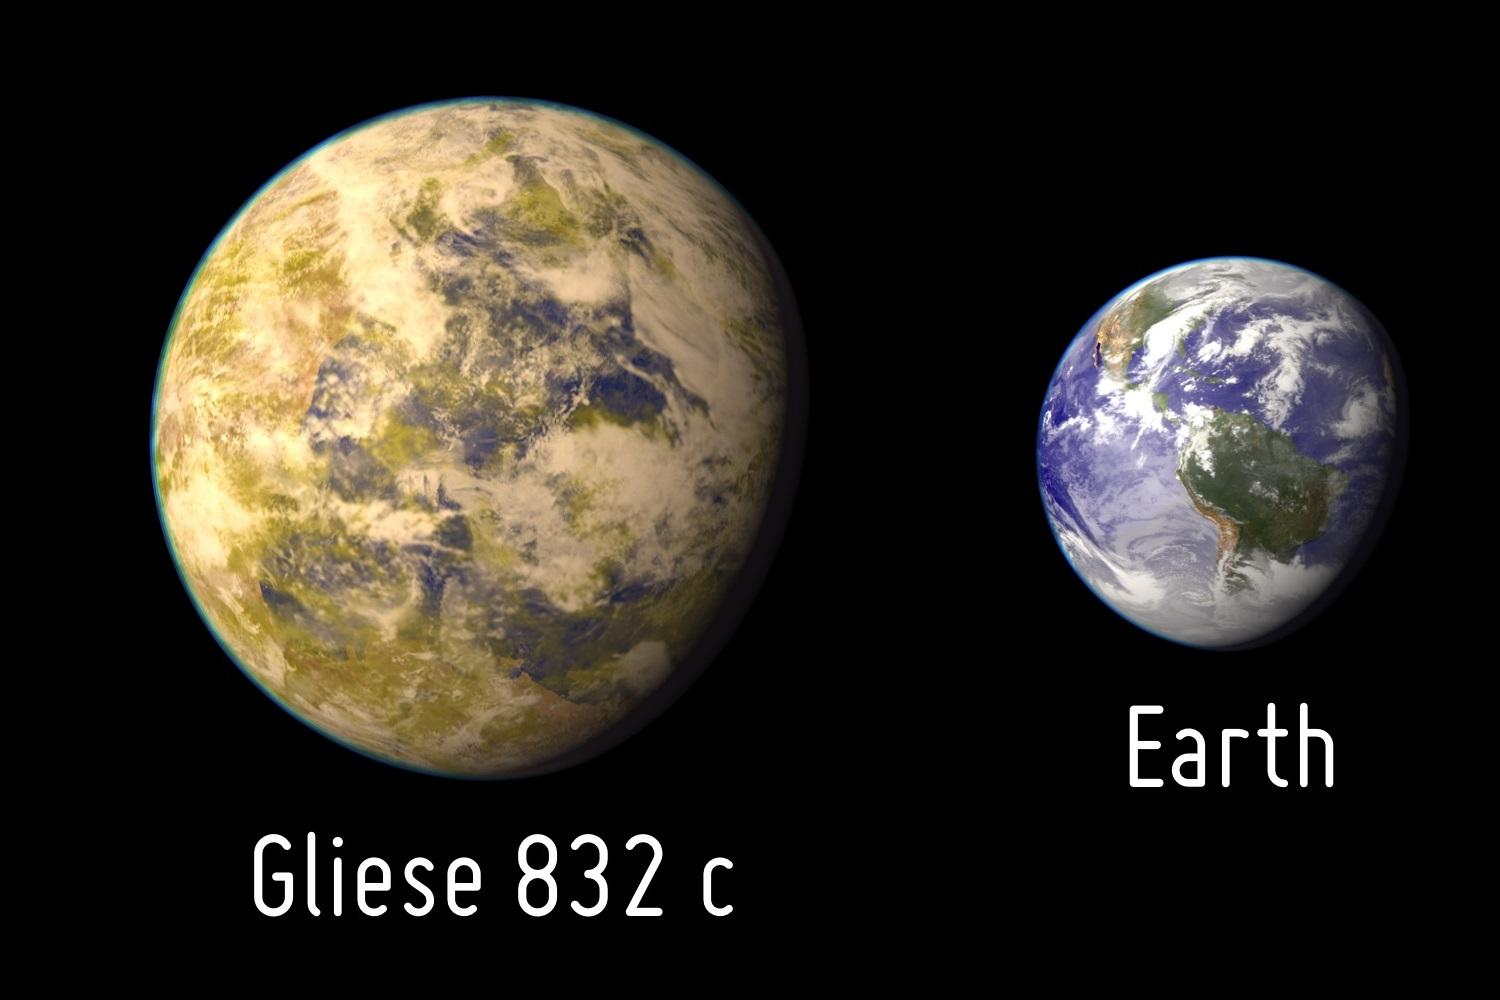 Earth-like Planet Capable of Supporting Life Discovered